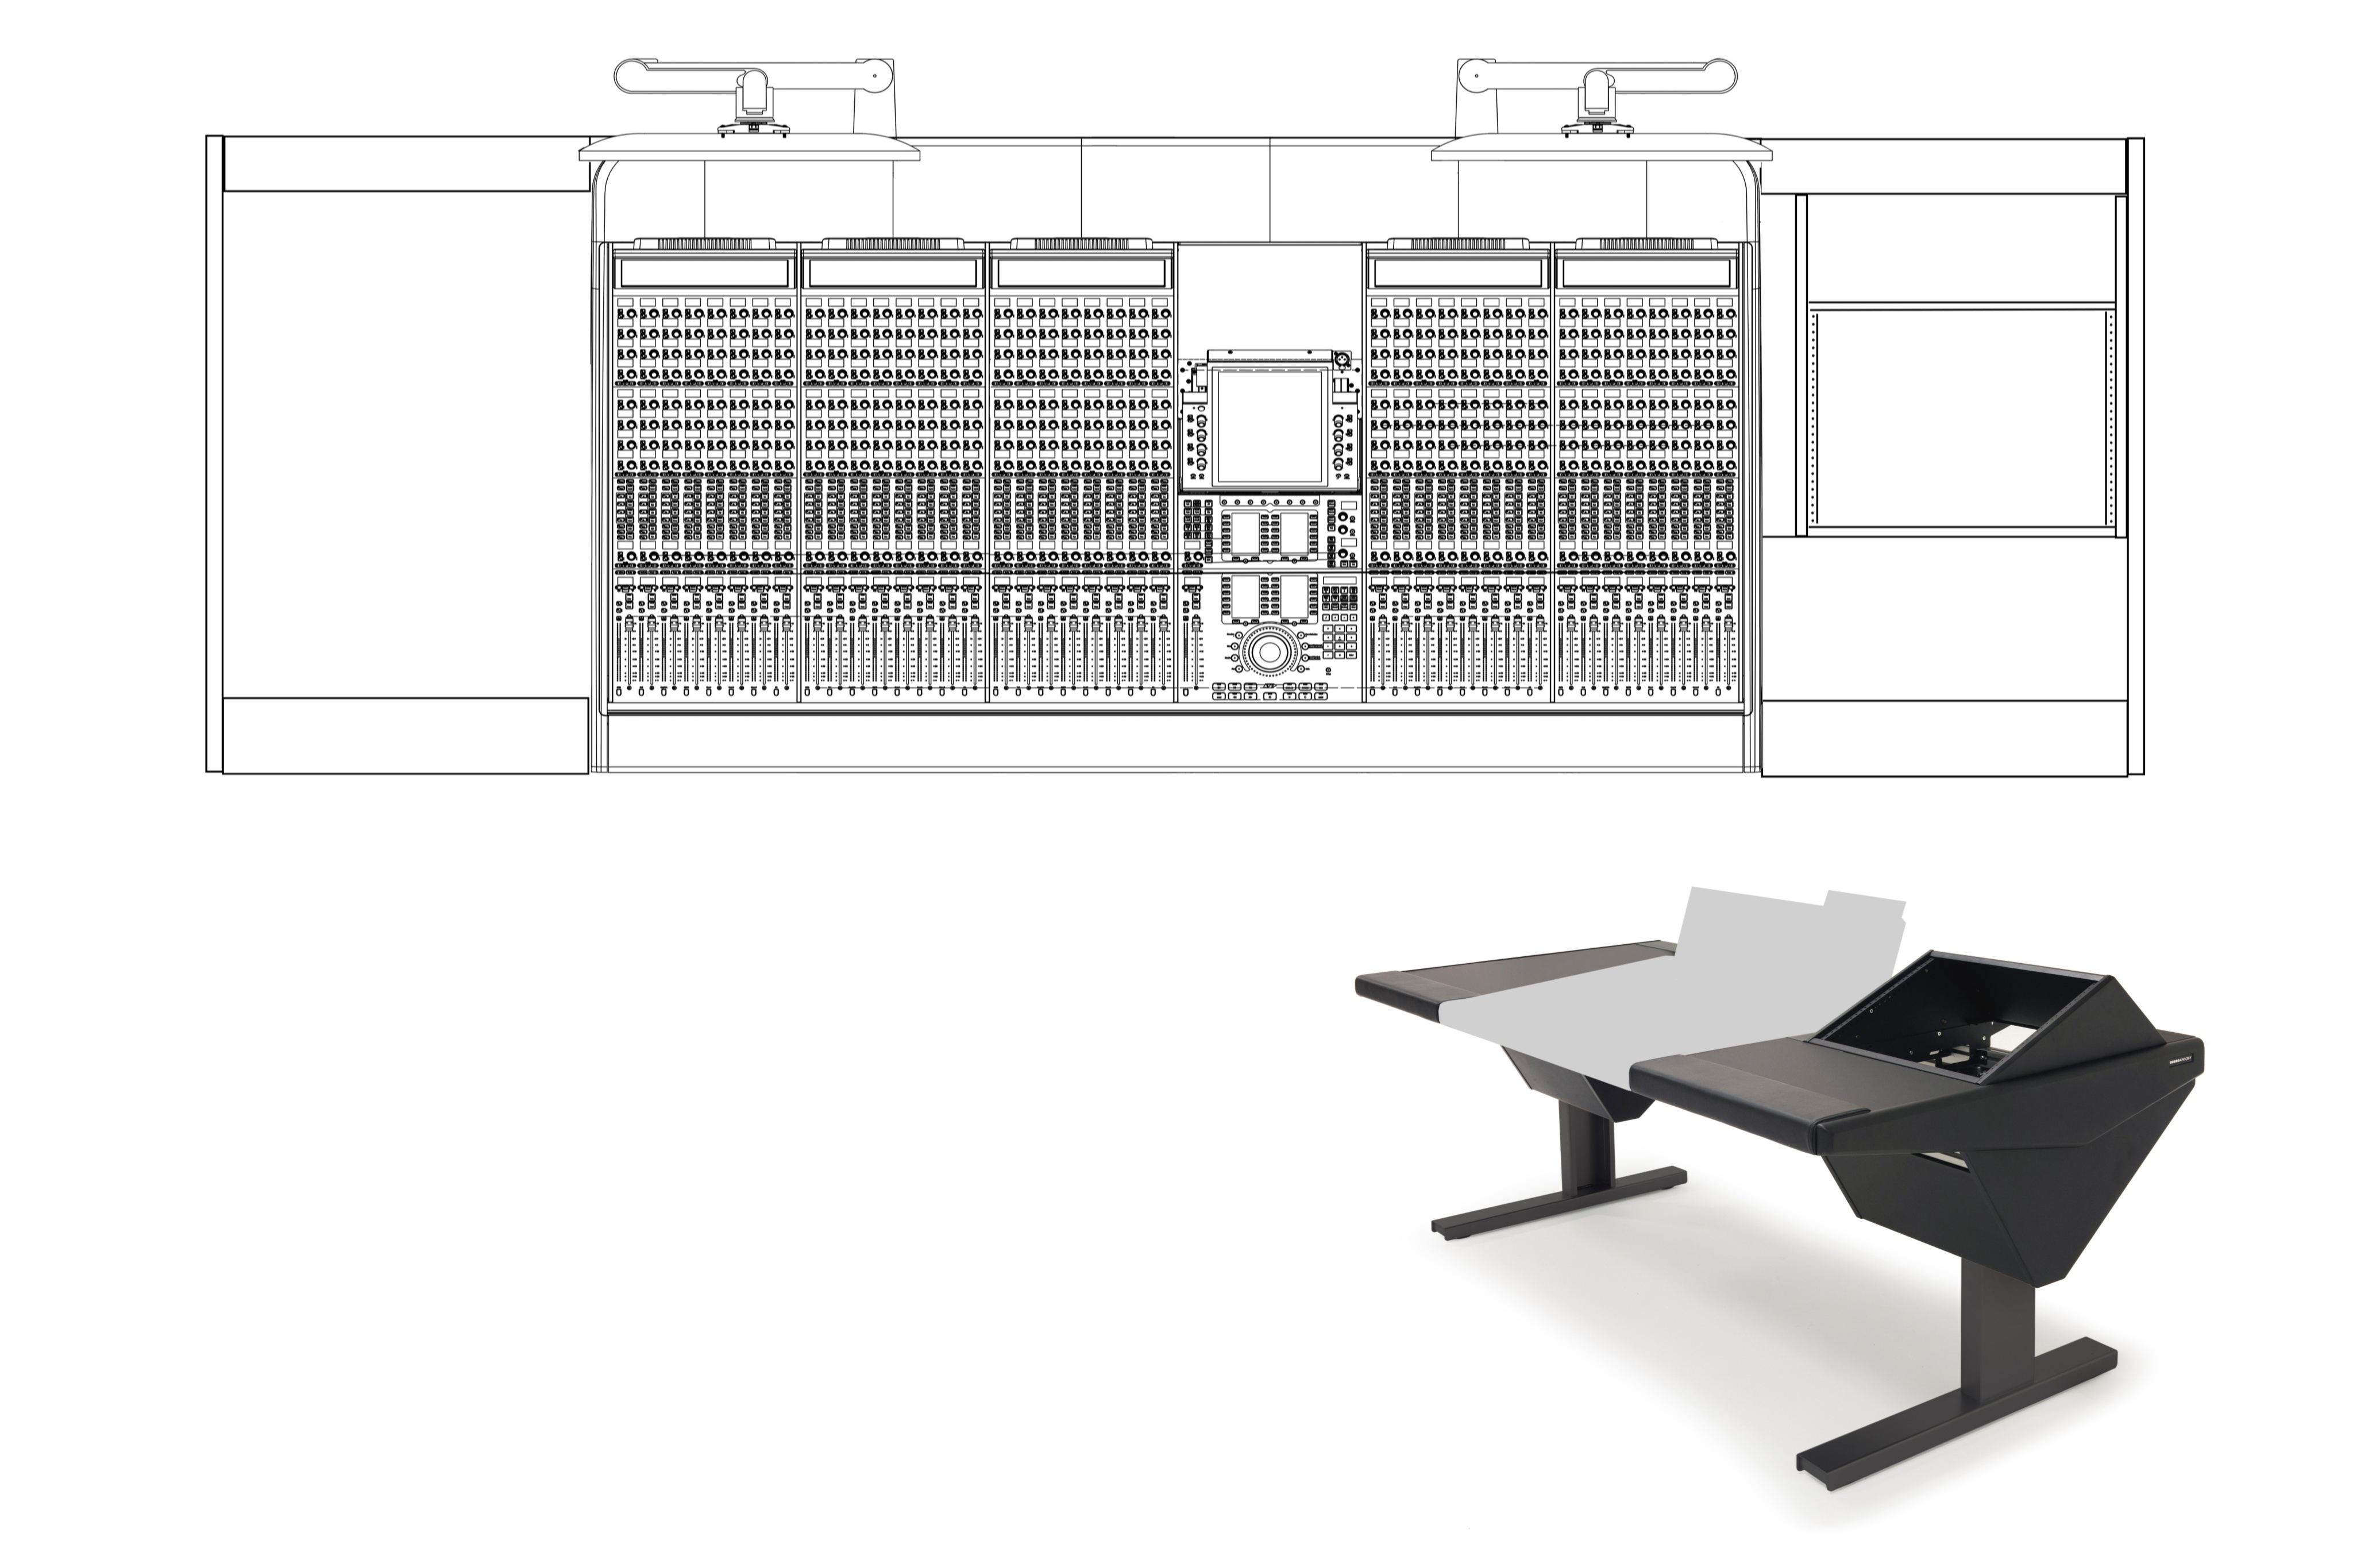 40 Fader System with Desk (L) and Rack (R)